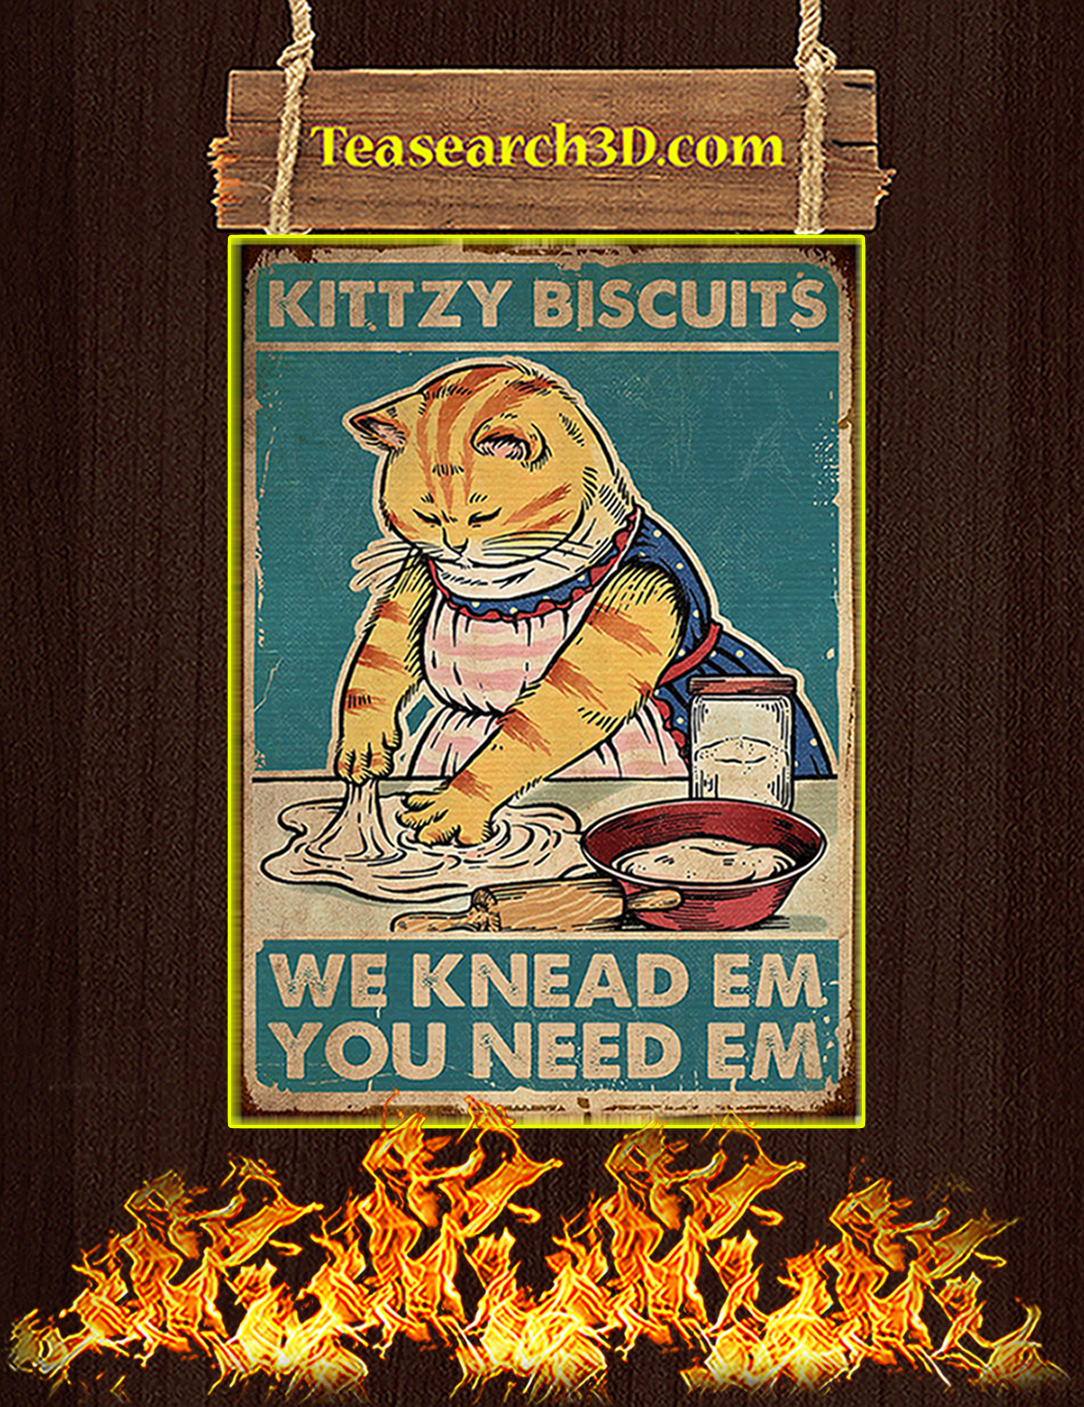 Kittzy Biscuits We Knead Em You Need Em Poster A2